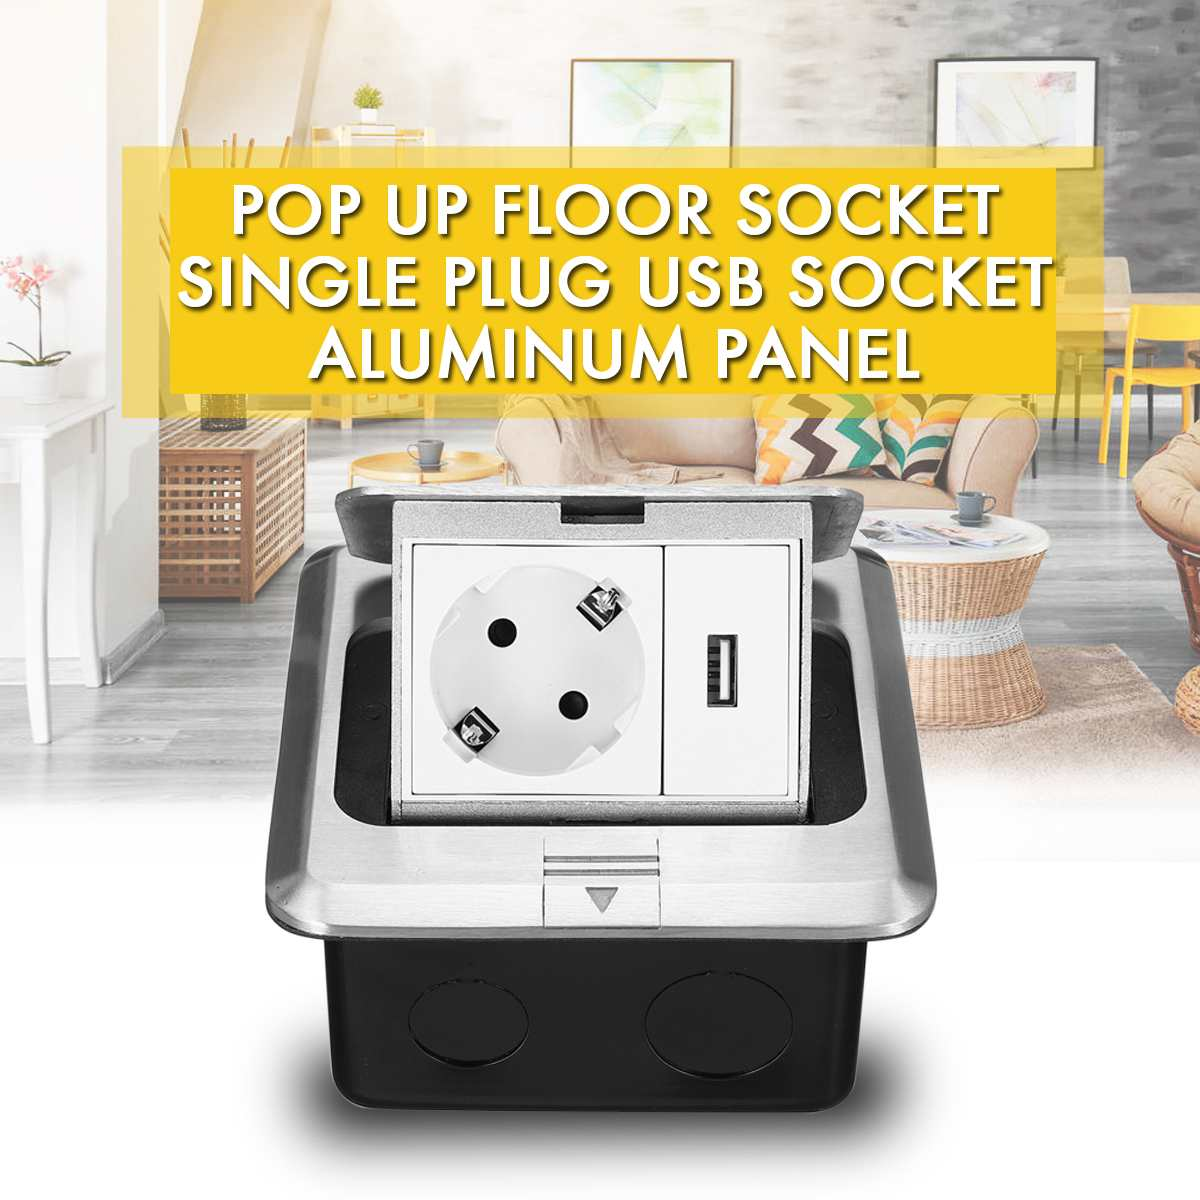 All Aluminum Silver Panel Pop-Up Floor Socket 16A Russia Spain EU Standard Power Outlet With USB Charging Port 5V 1A